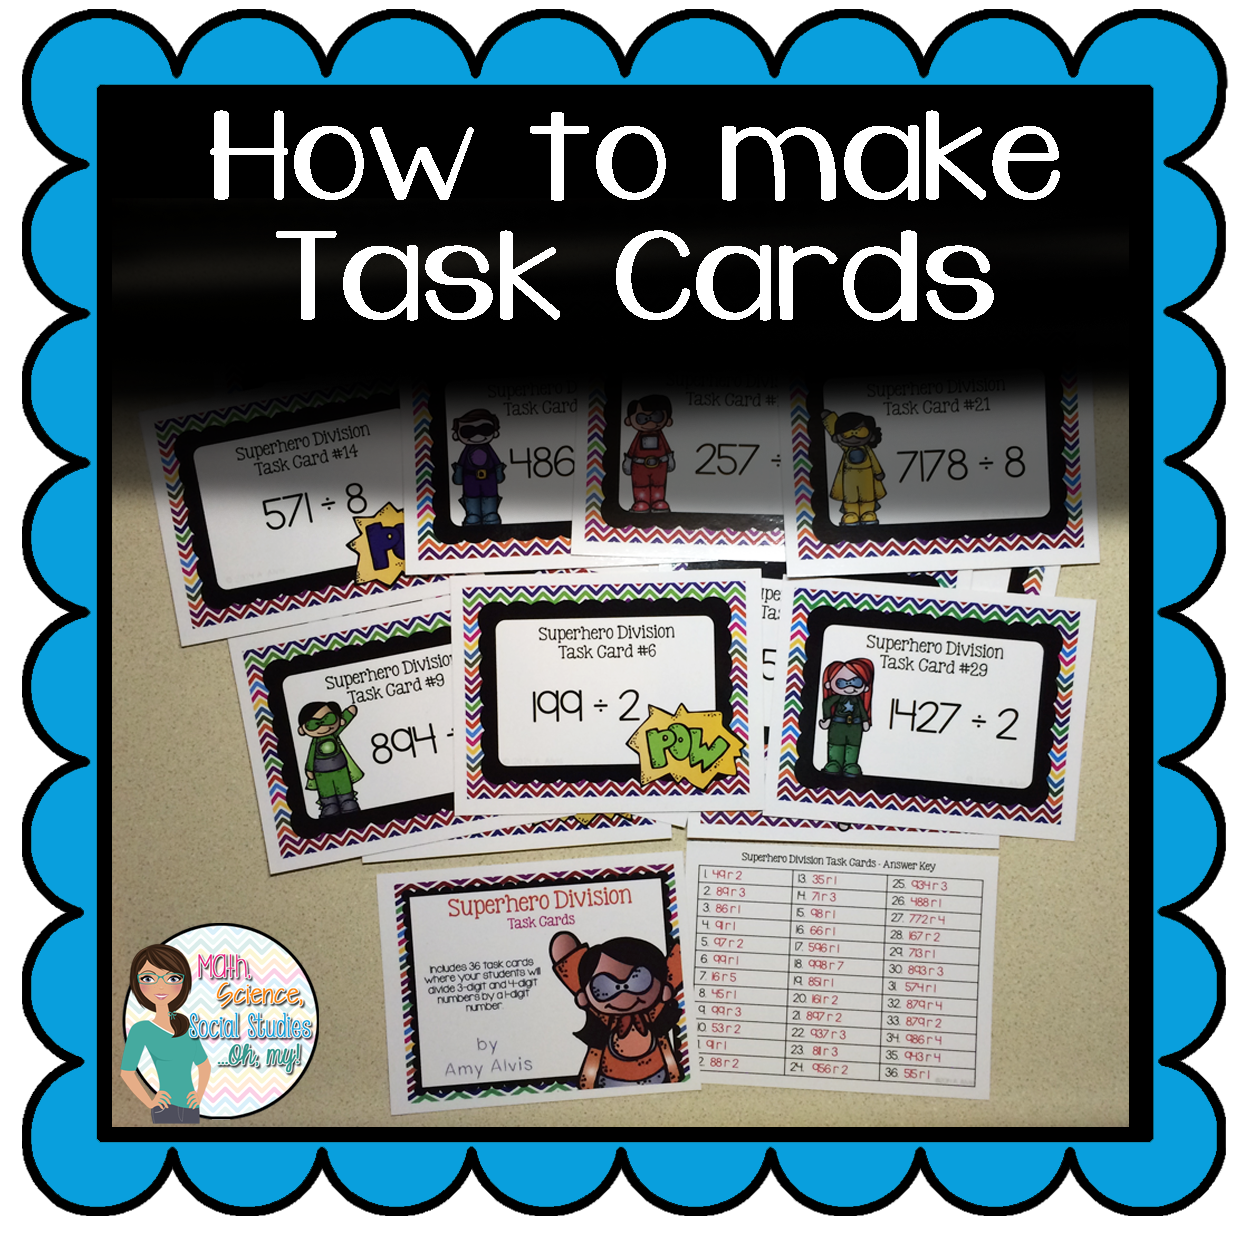 How To Make Task Cards